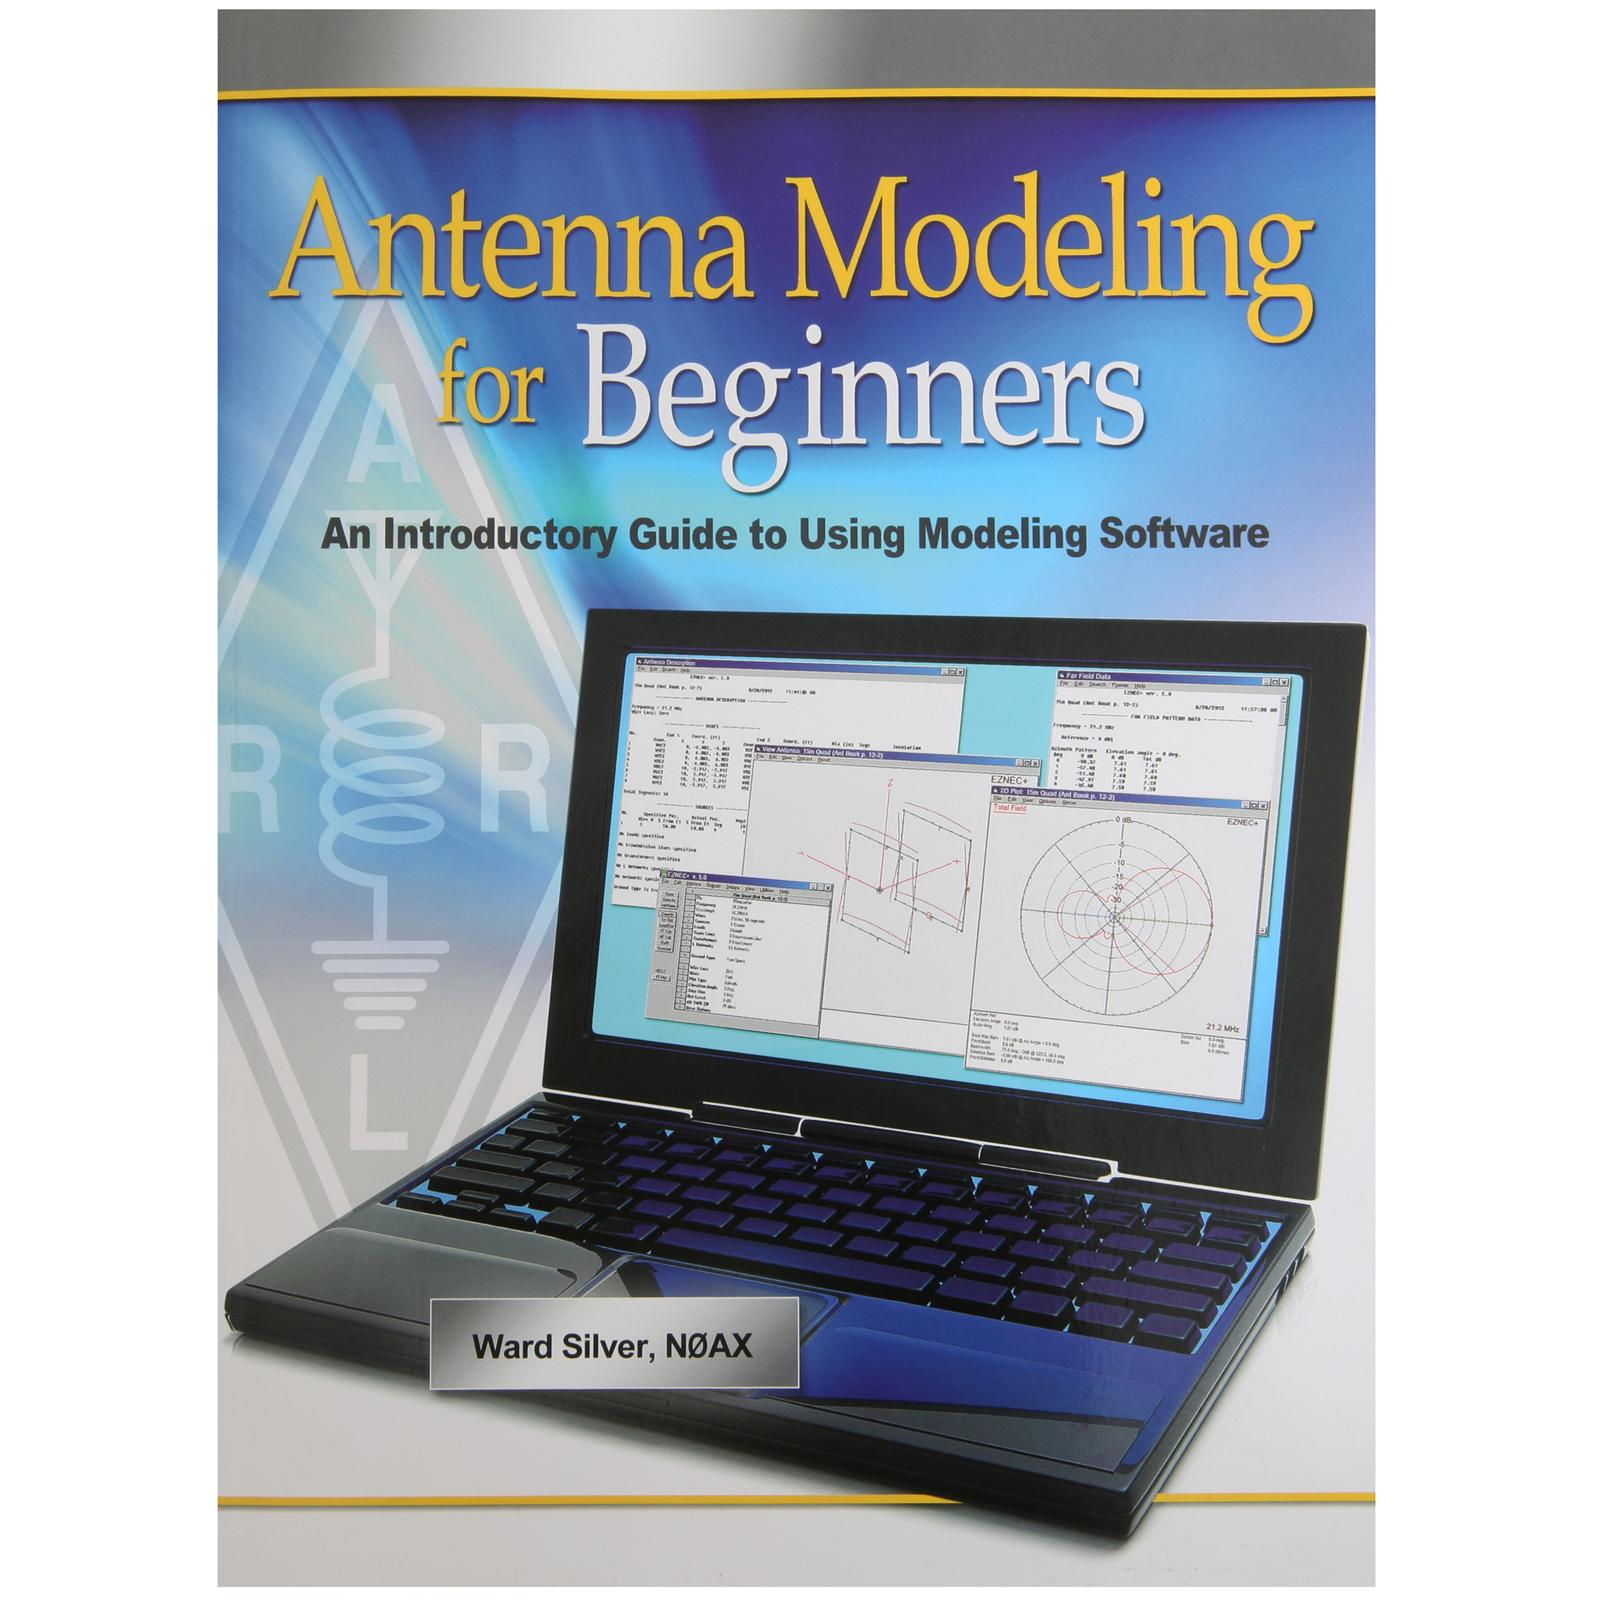 ARRL - Antenna Modeling for Beginners 3961 - Free Shipping